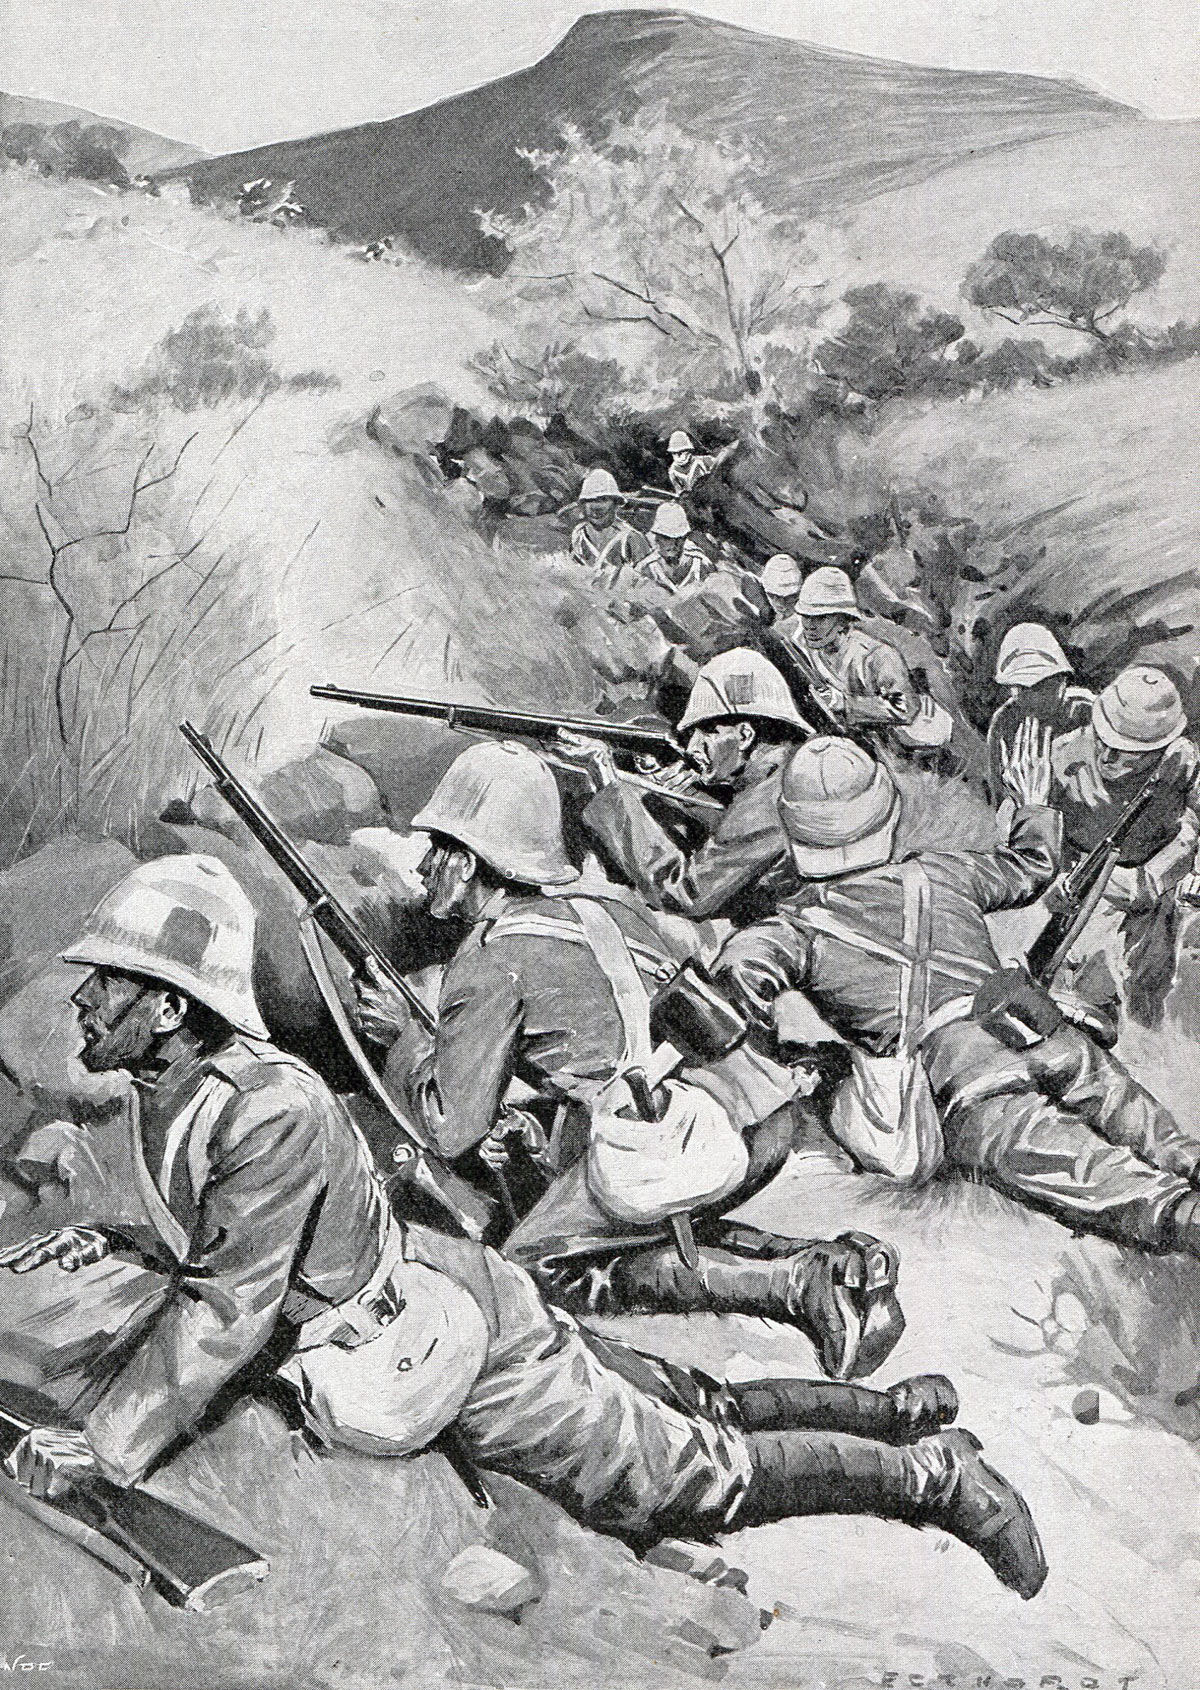 Surreys on Monte Cristo: Battles of Val Krantz and Pieters 5th to 28th February 1900 in the Great Boer War: picture by Oscar Eckhardt